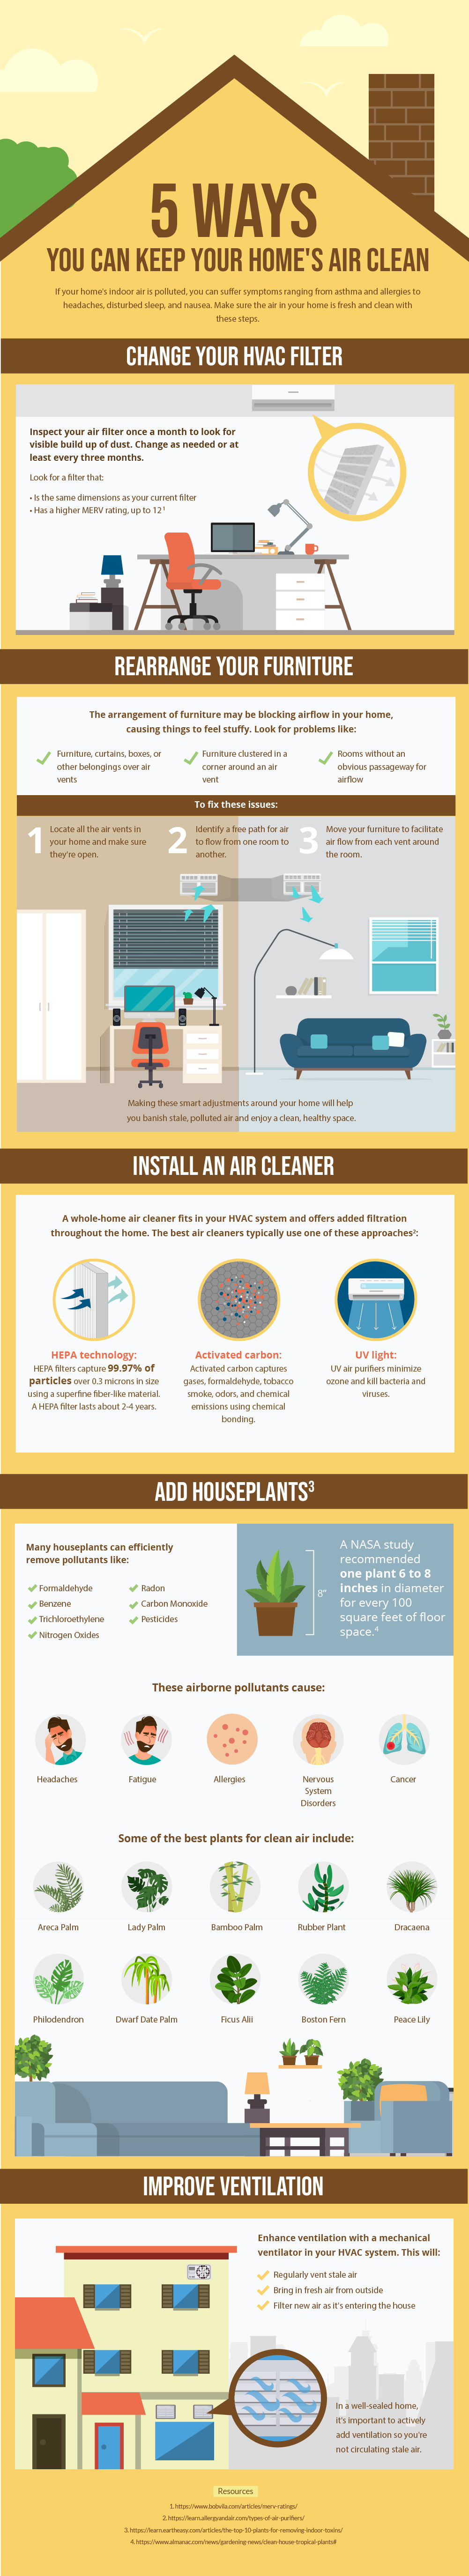 Photo of 5 Ways You Can Keep Your Home's Air Clean